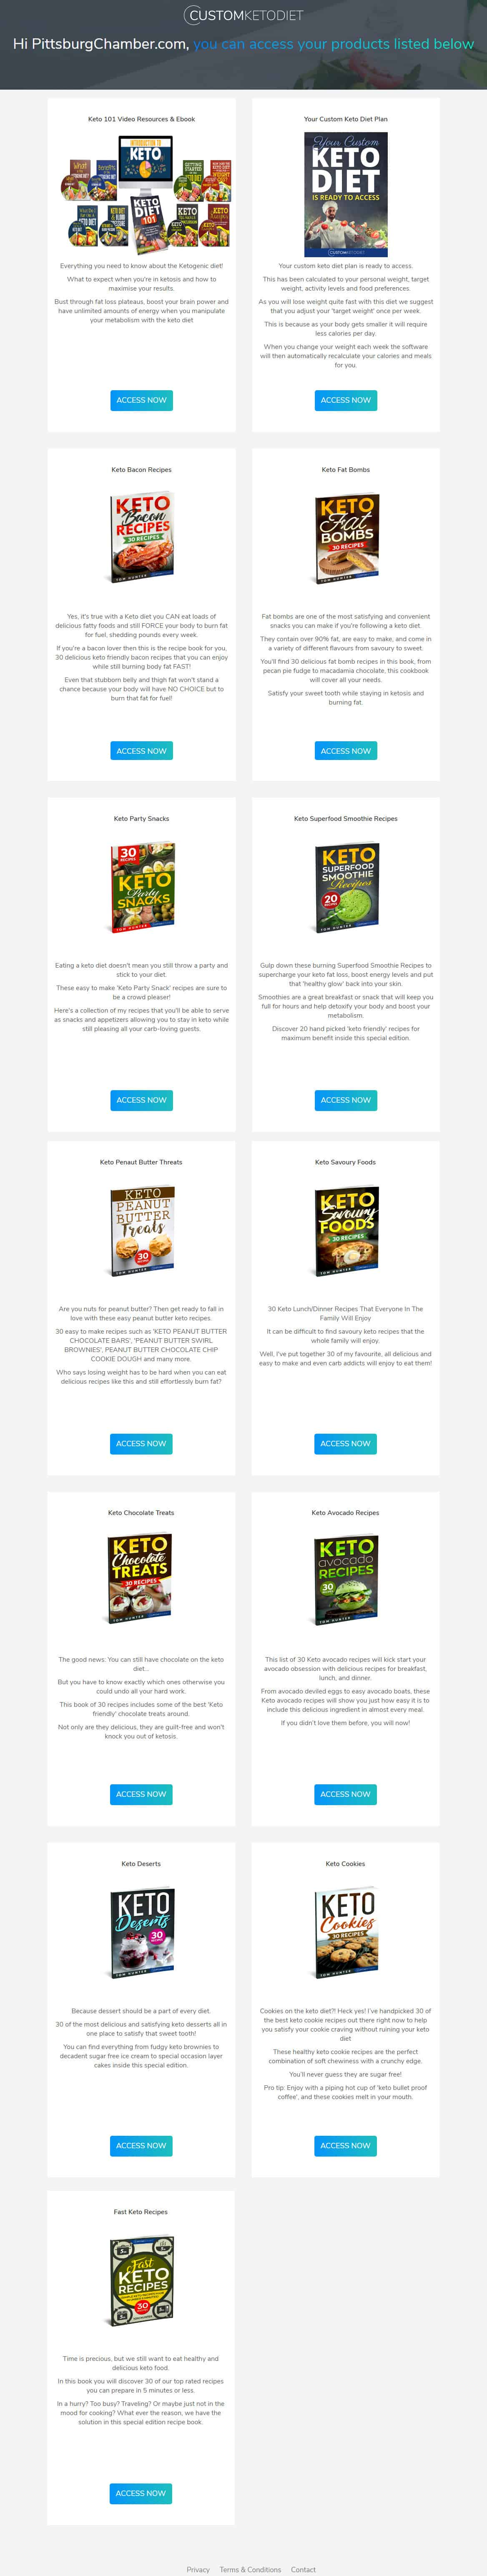 Plan Custom Keto Diet Used Ebay